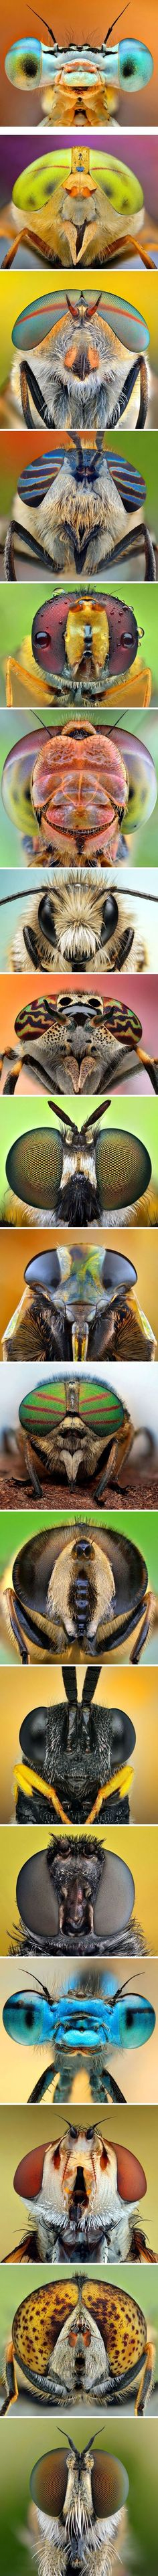 Photographer Ireneusz Irass Waledzik - collection of fascinating facet eyes of dragonflies, bees and flies. ✖️Fosterginger.Pinterest.Com✖️No Pin Limits✖️More Pins Like This One At FOSTERGINGER @ Pinterest ✖️✖️Fosterginger.Pinterest.Com✖️No İğne Sınırları This Daha Fazla Bükülmüş Burçlar FOSTERGINGER @ Pinterest✖️